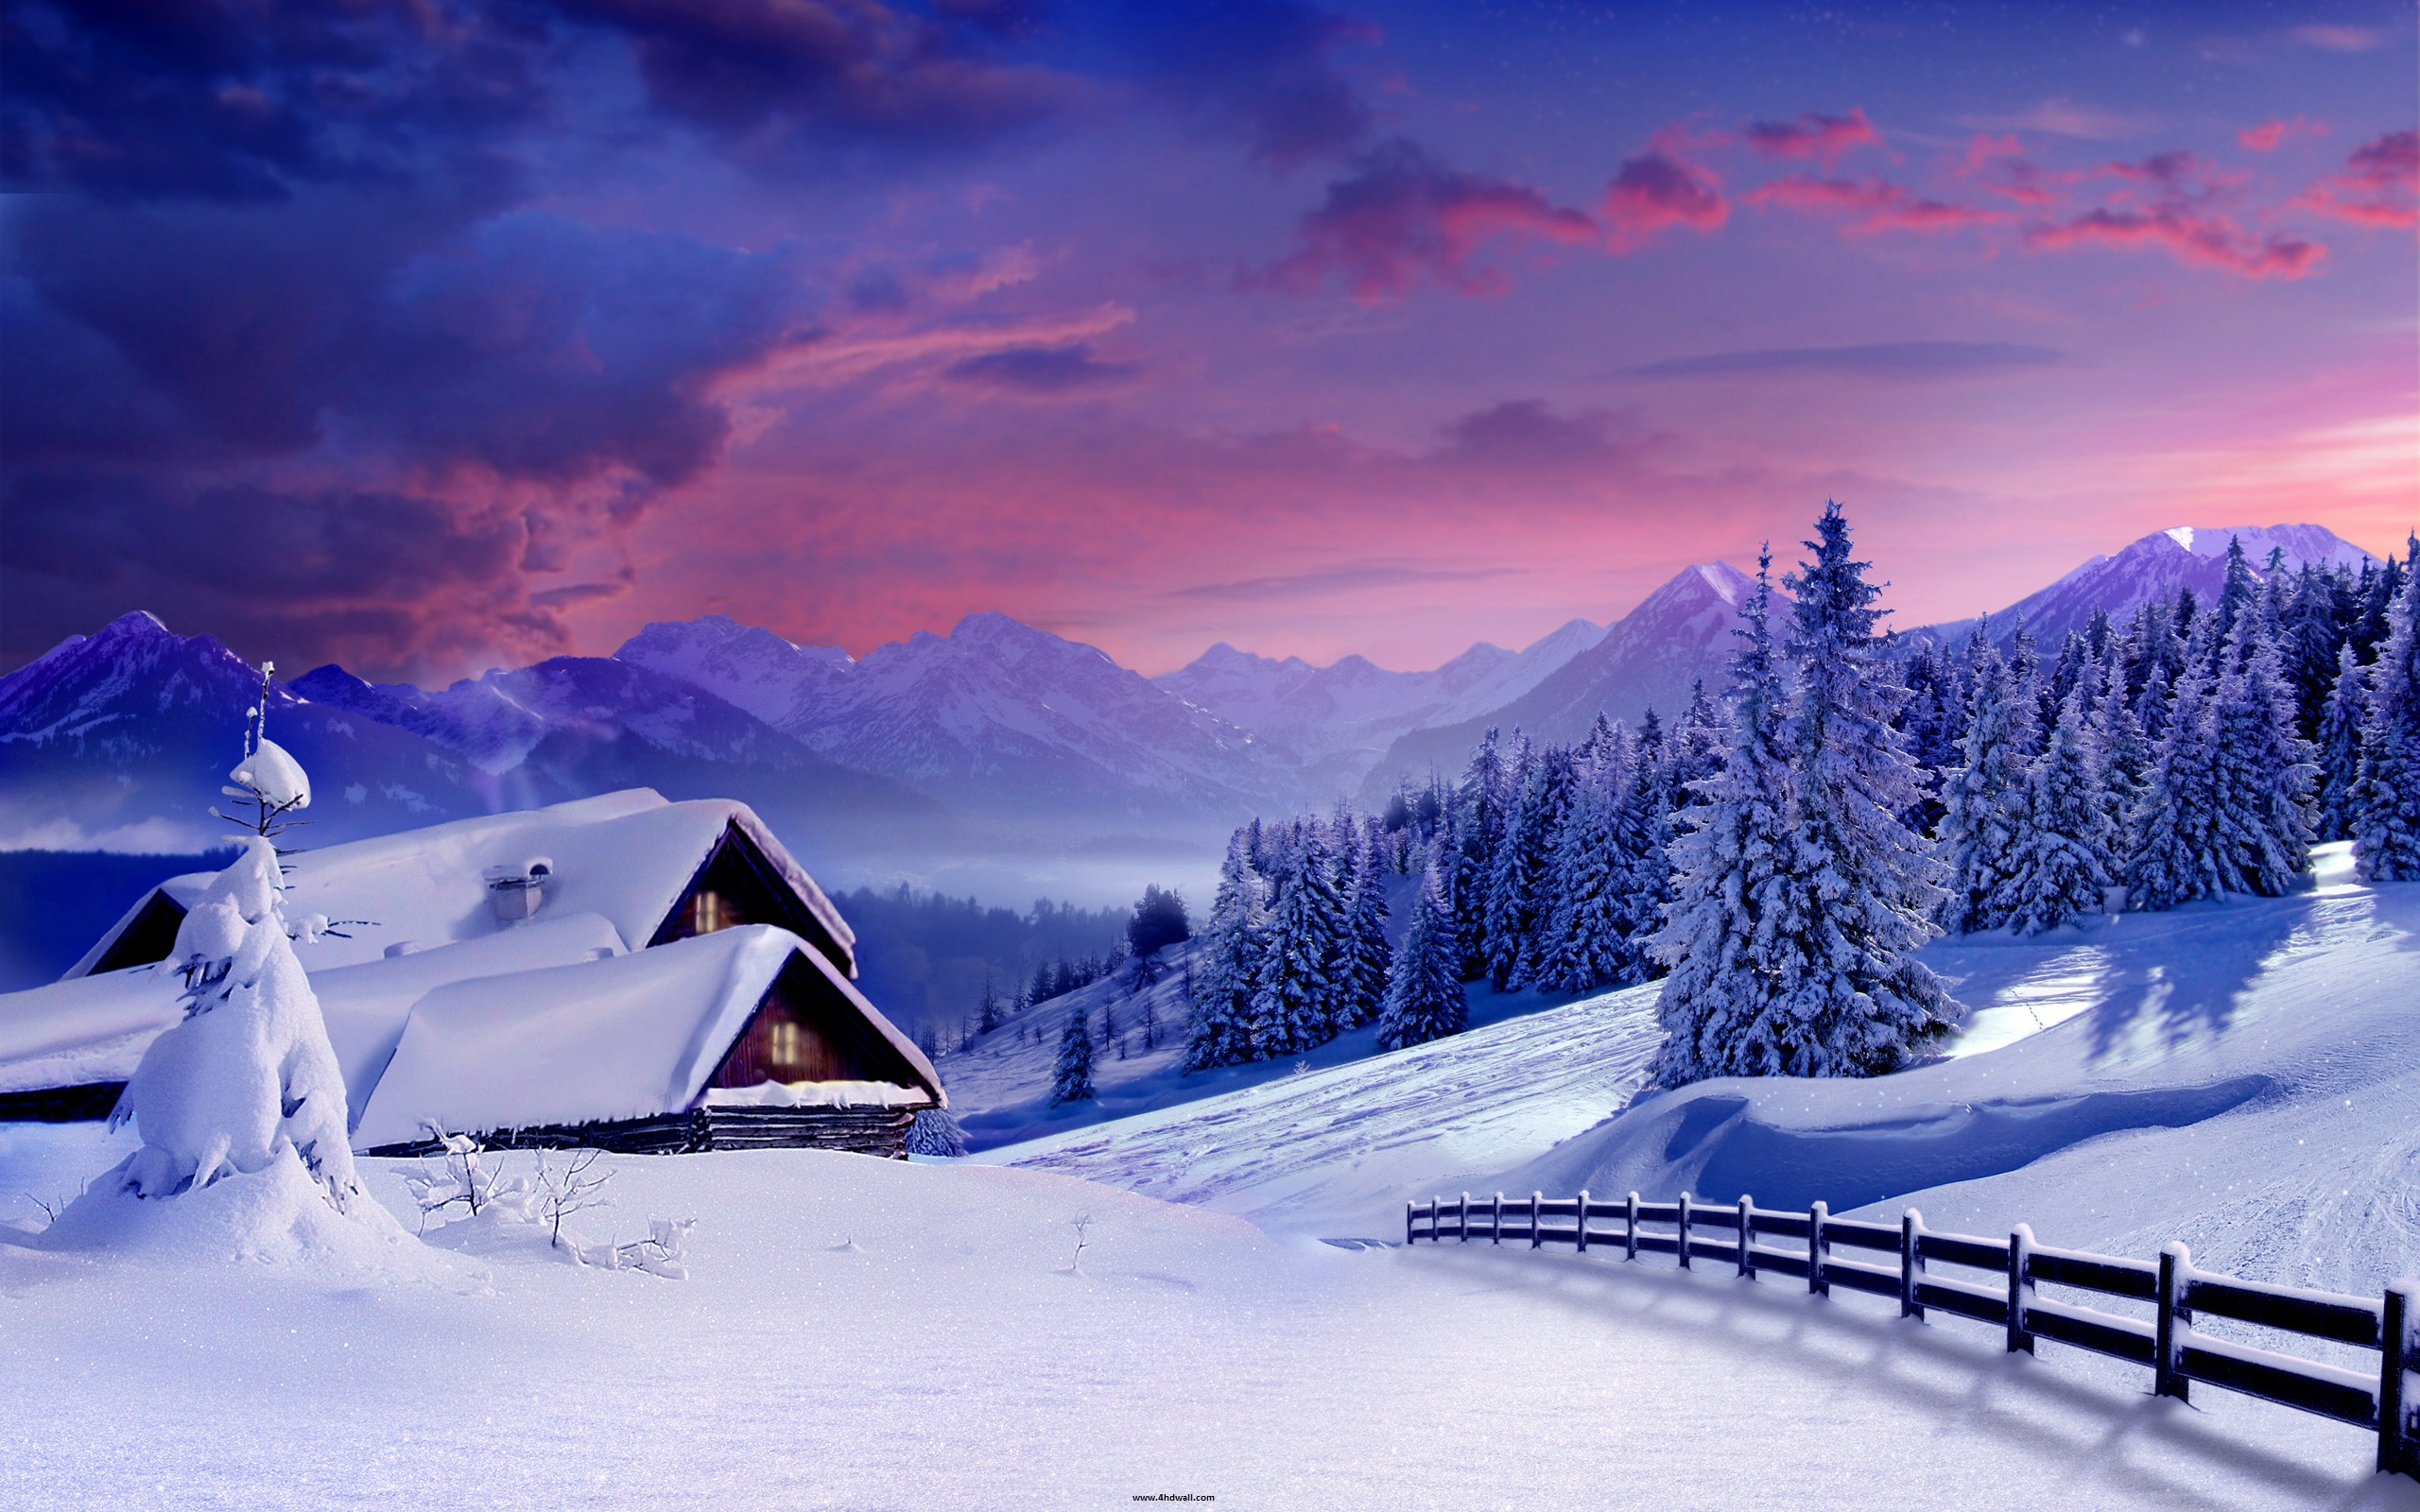 beautifulwinterhdwallpapersfordesktopfree hd wallpaper